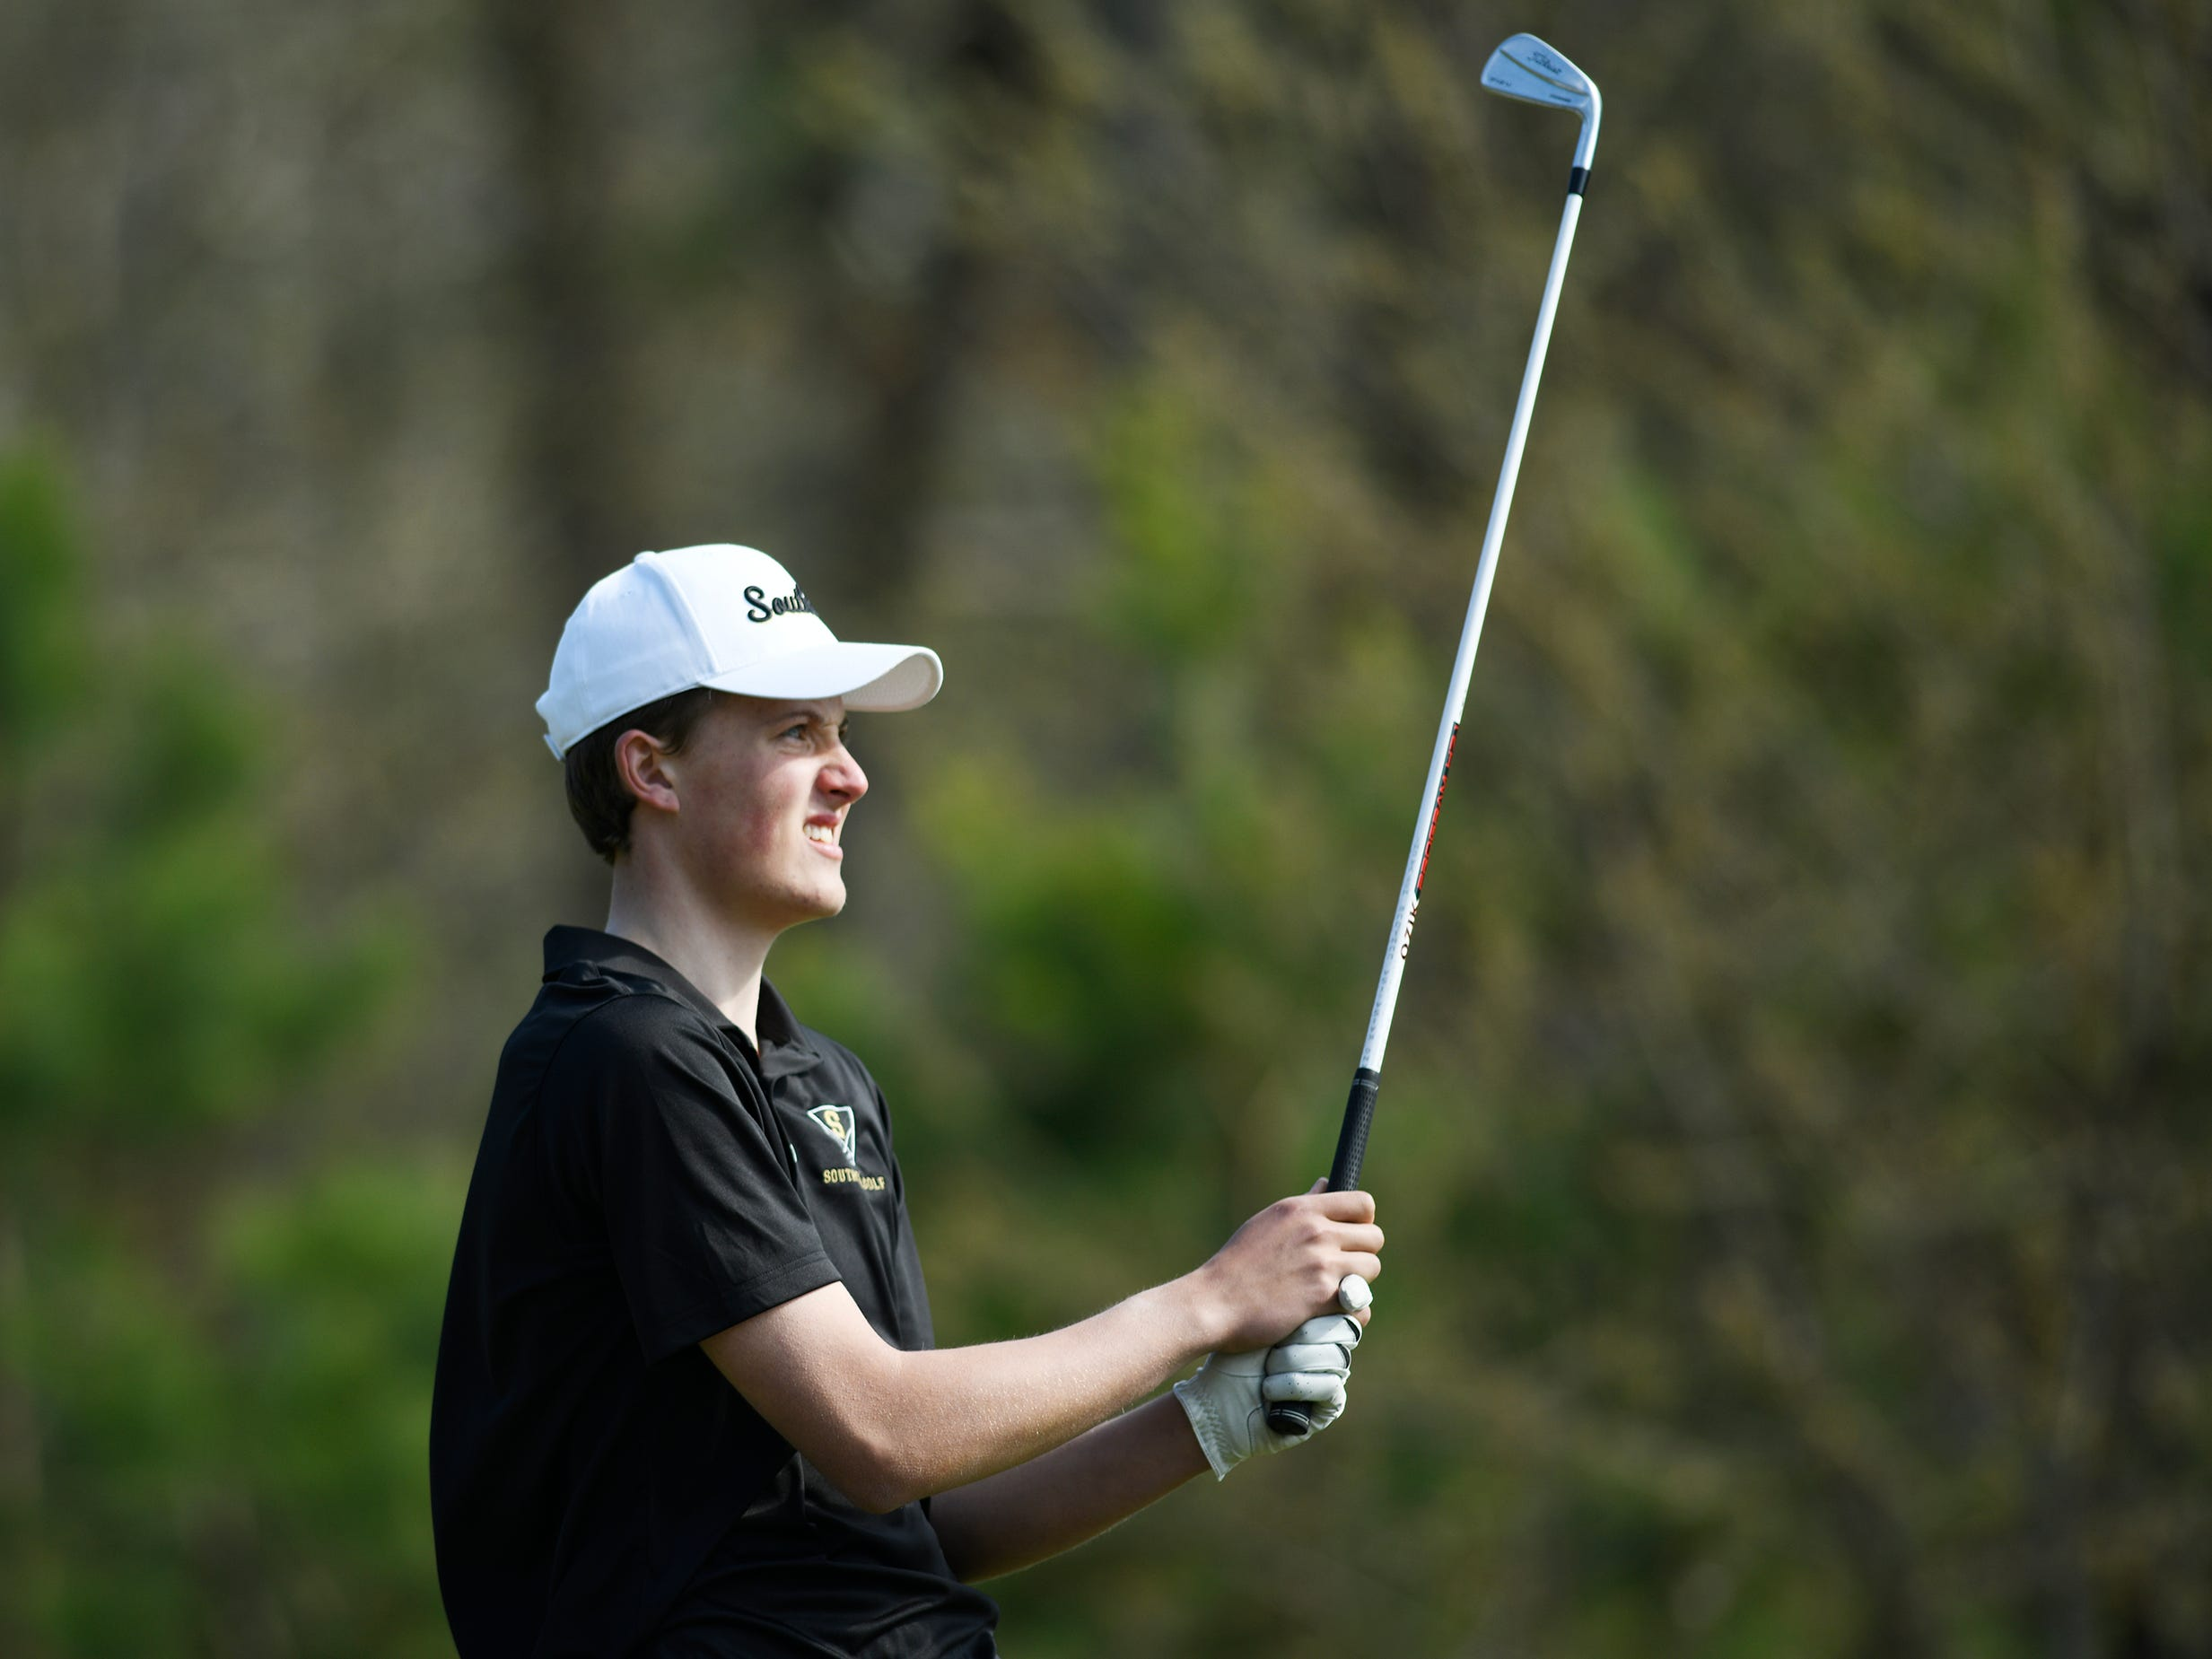 Lasse Lehmann of Southern Regional High School competes during the Ocean County Tournament at Sea Oaks Country Club in Little Egg Harbor on Monday, April 15, 2019.